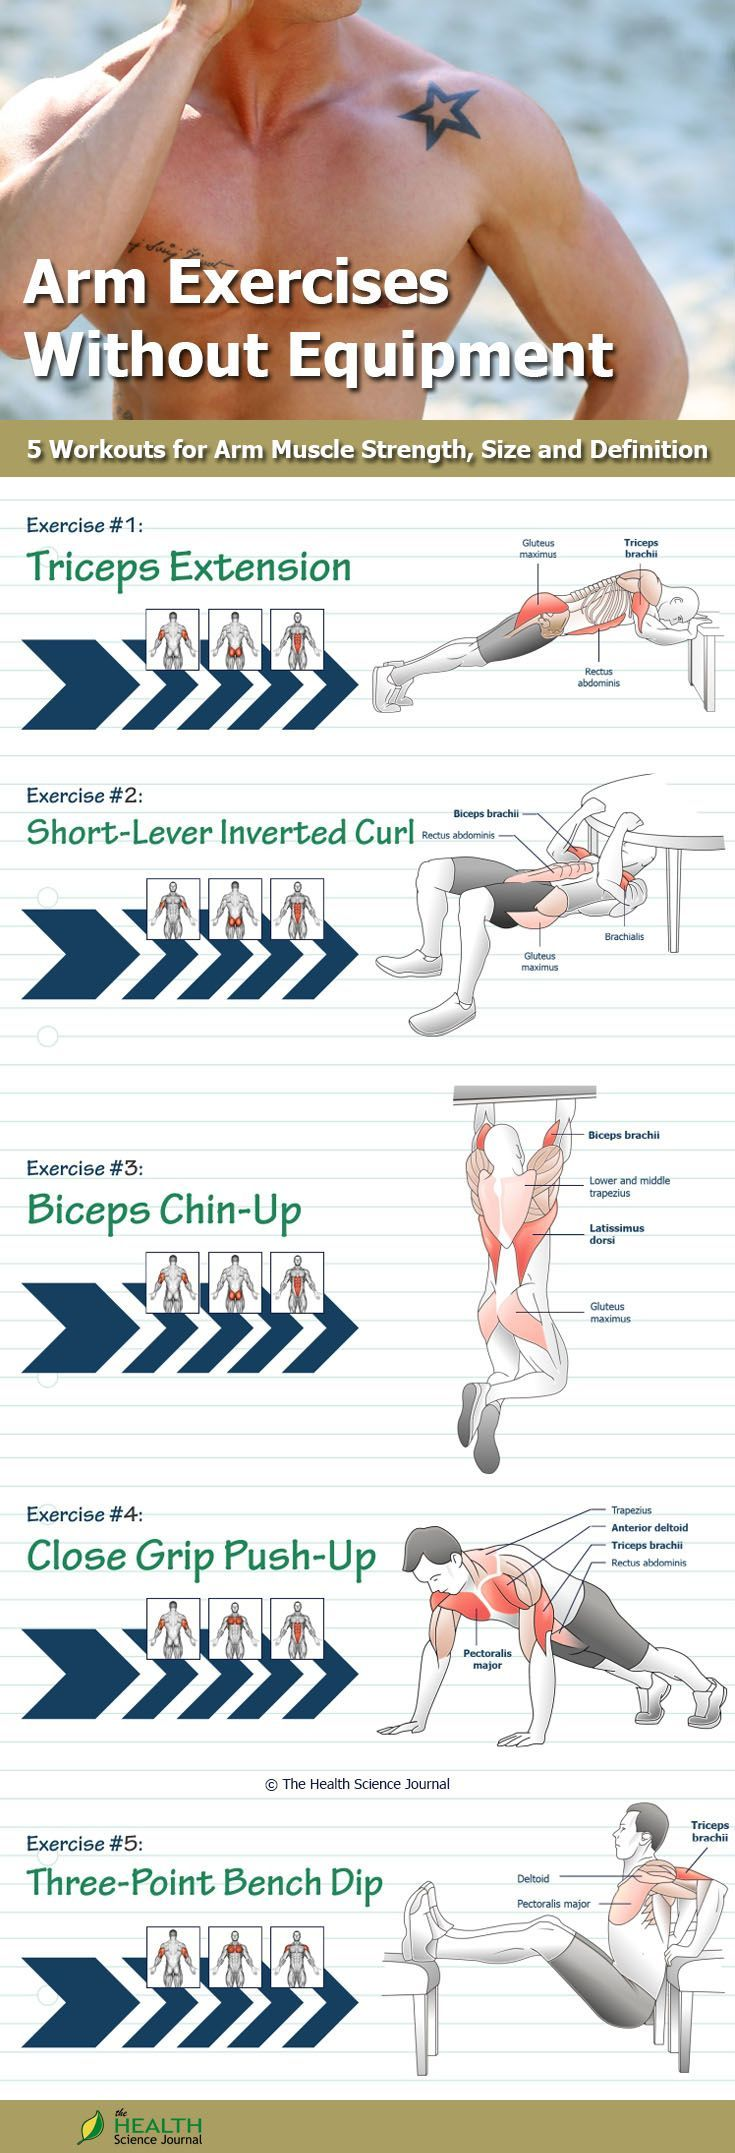 Bodyweight tricep exercises and bodyweight bicep exercises